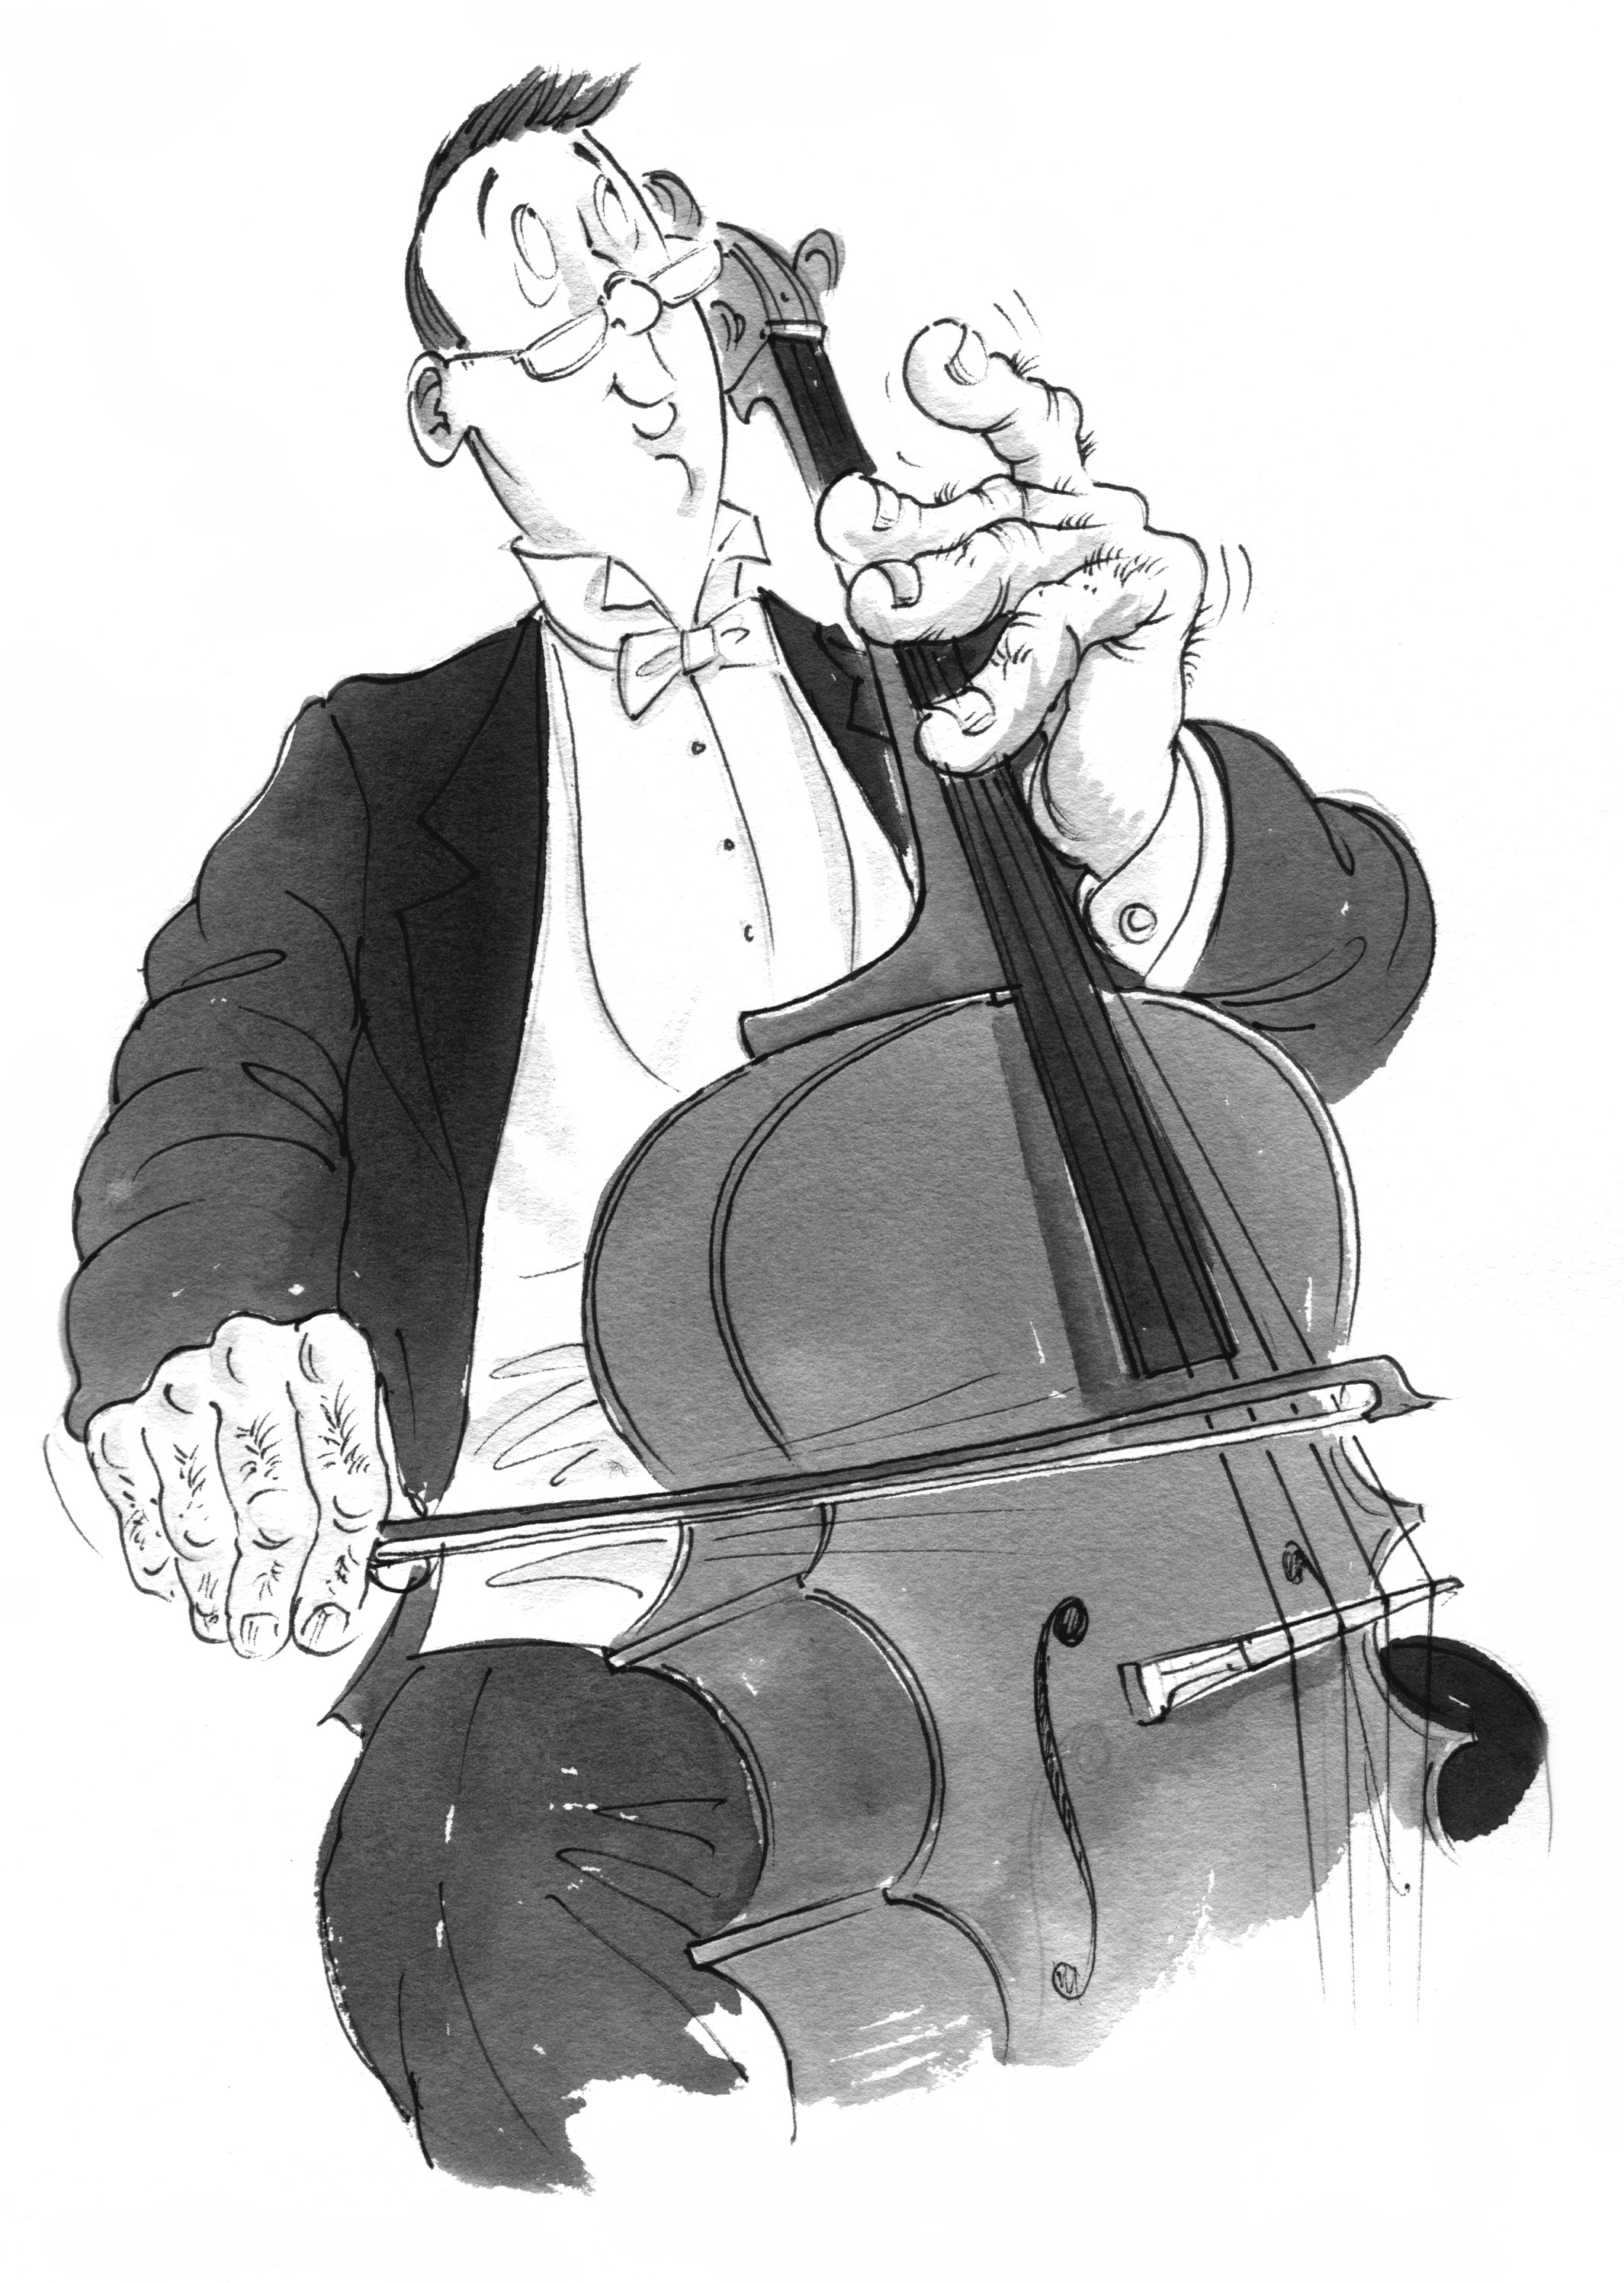 Cartoon of a man playing a cello with large hands